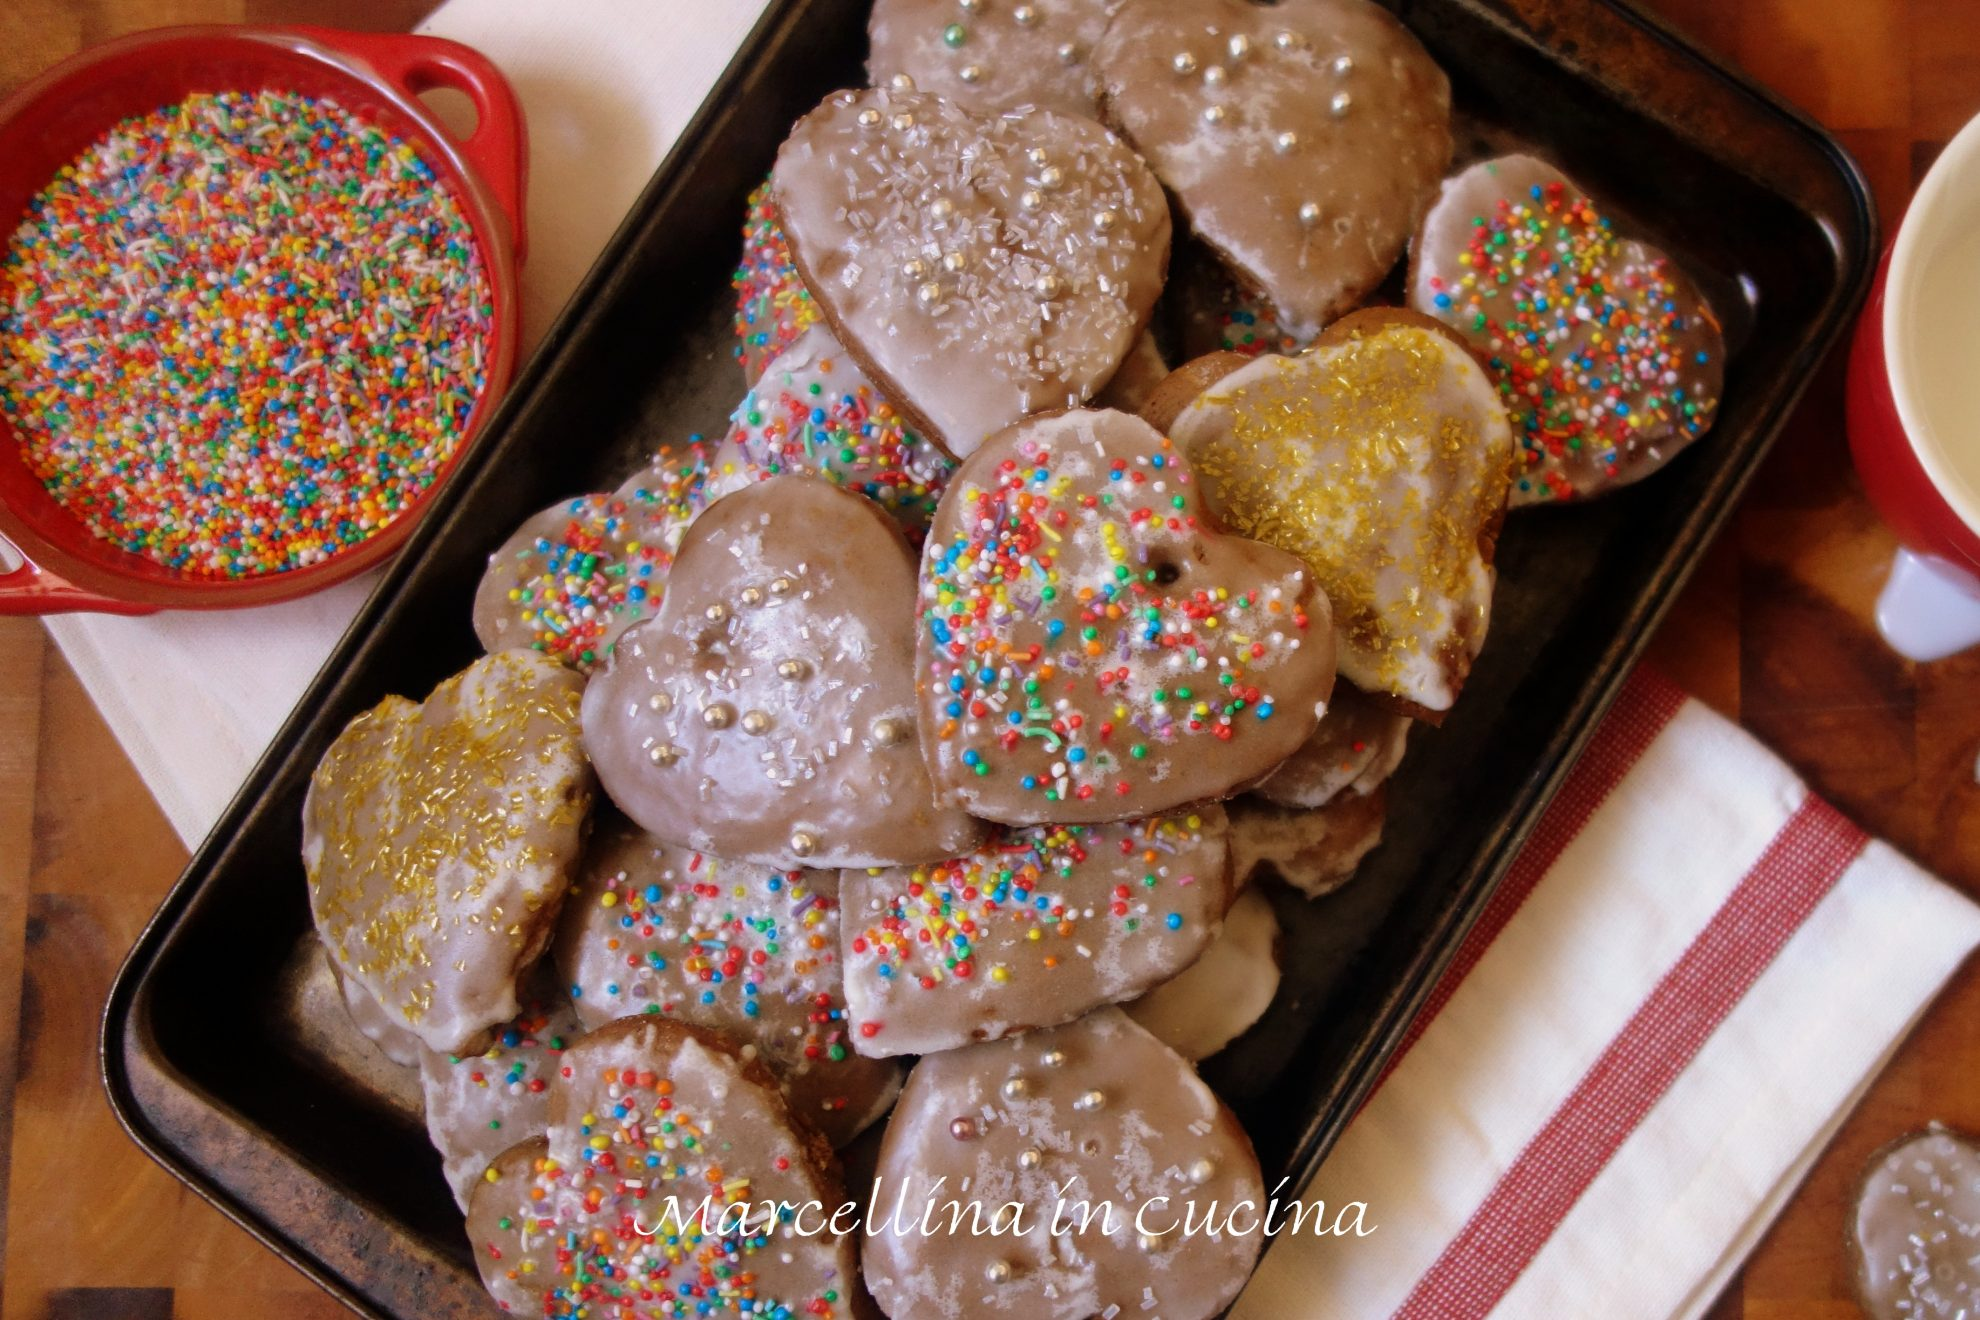 Lebkuchen Is A Delicious Spicy Christmas Cookie From Germany